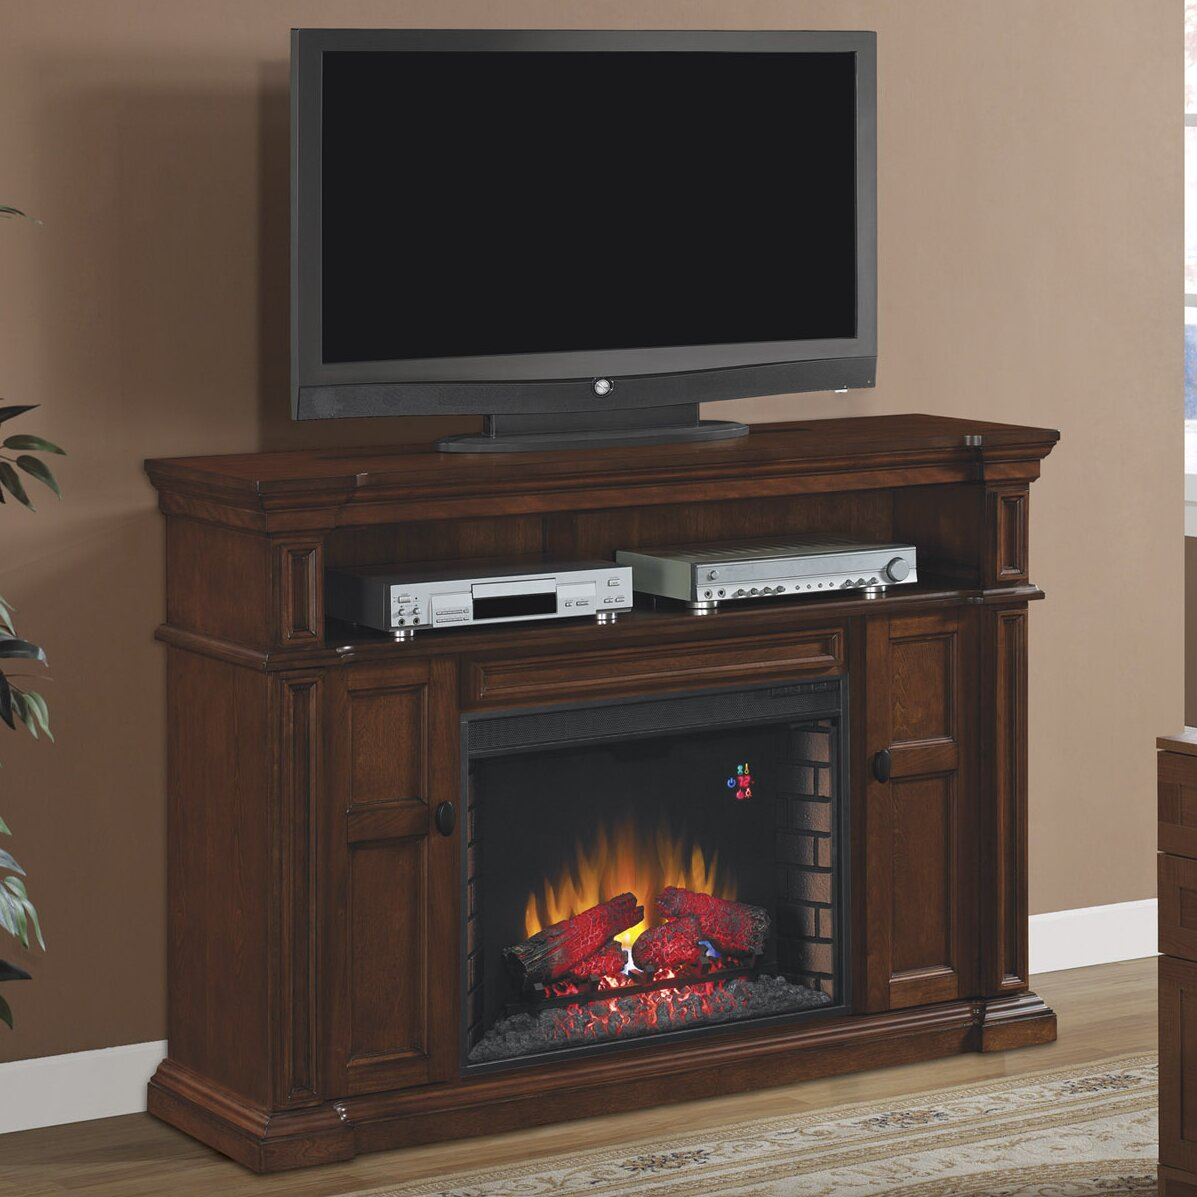 Montgomery 26in electric fireplace and tv stand cherry 26mm2490 c233 - Classic Flame Wyatt Tv Stand With Infared Electric Fireplace